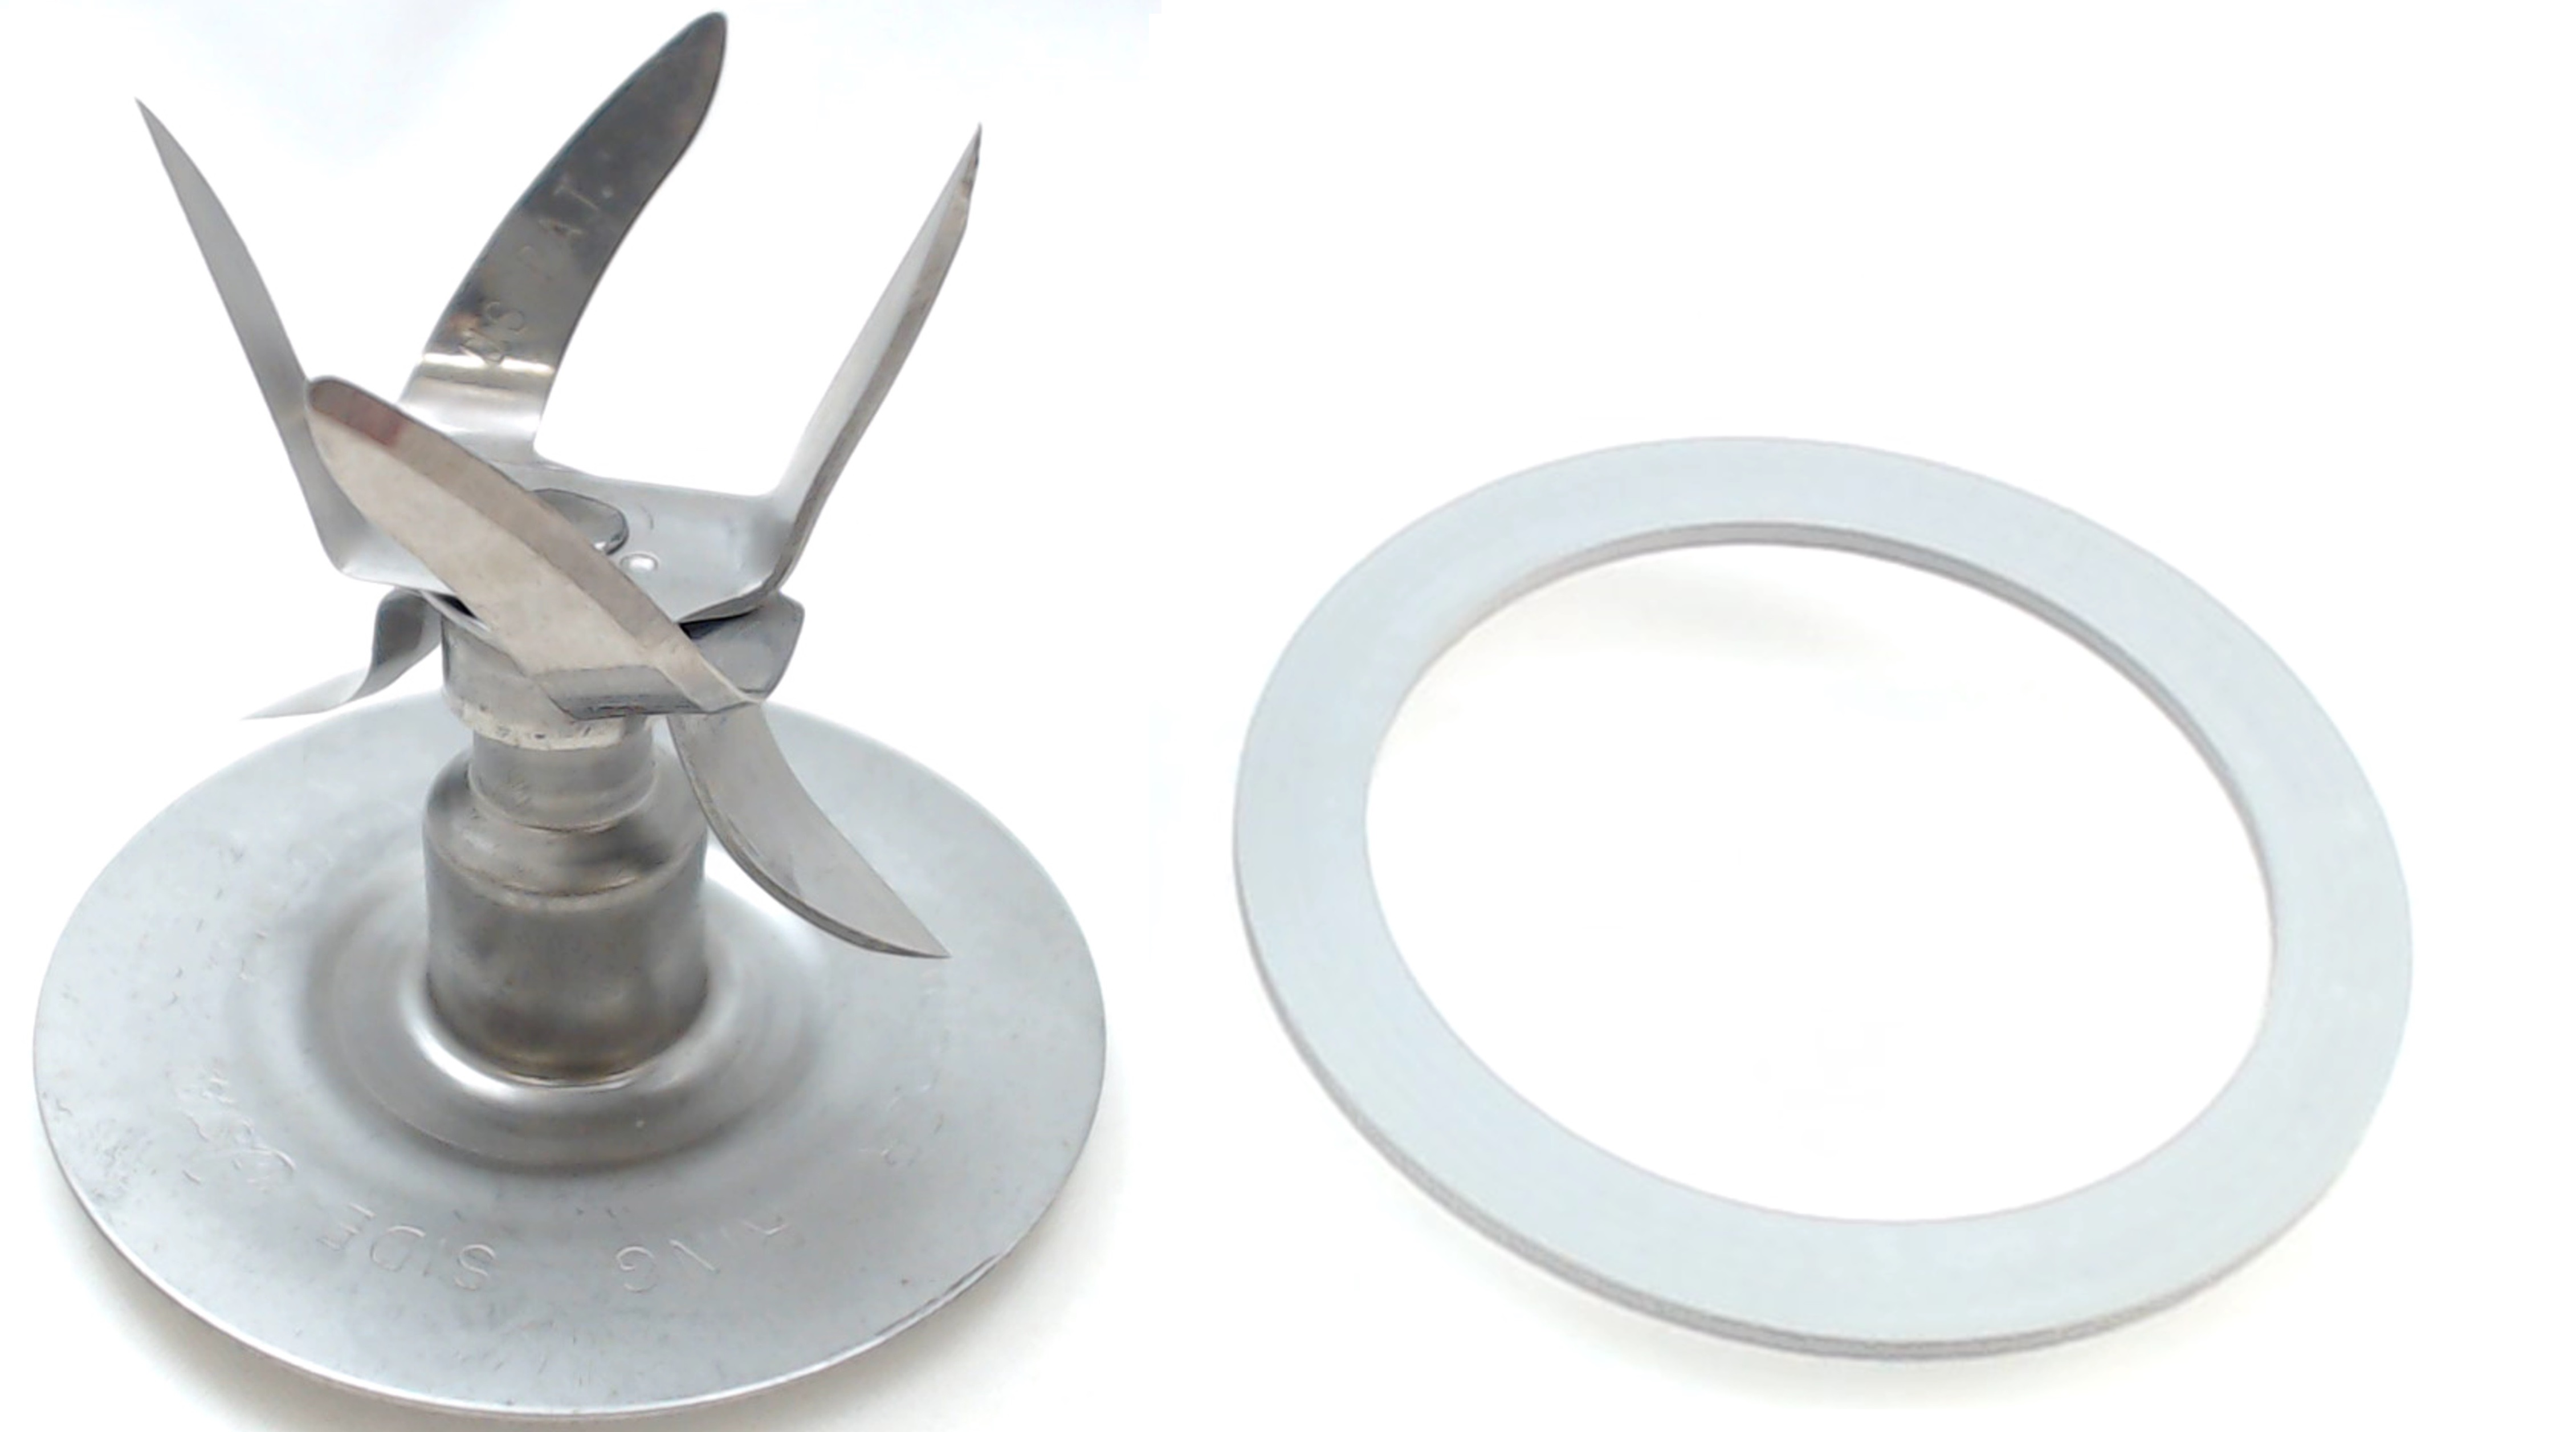 Ge Blender Model 169202 Parts And Accessories ~ Fusion blender blade cutter with gasket for oster